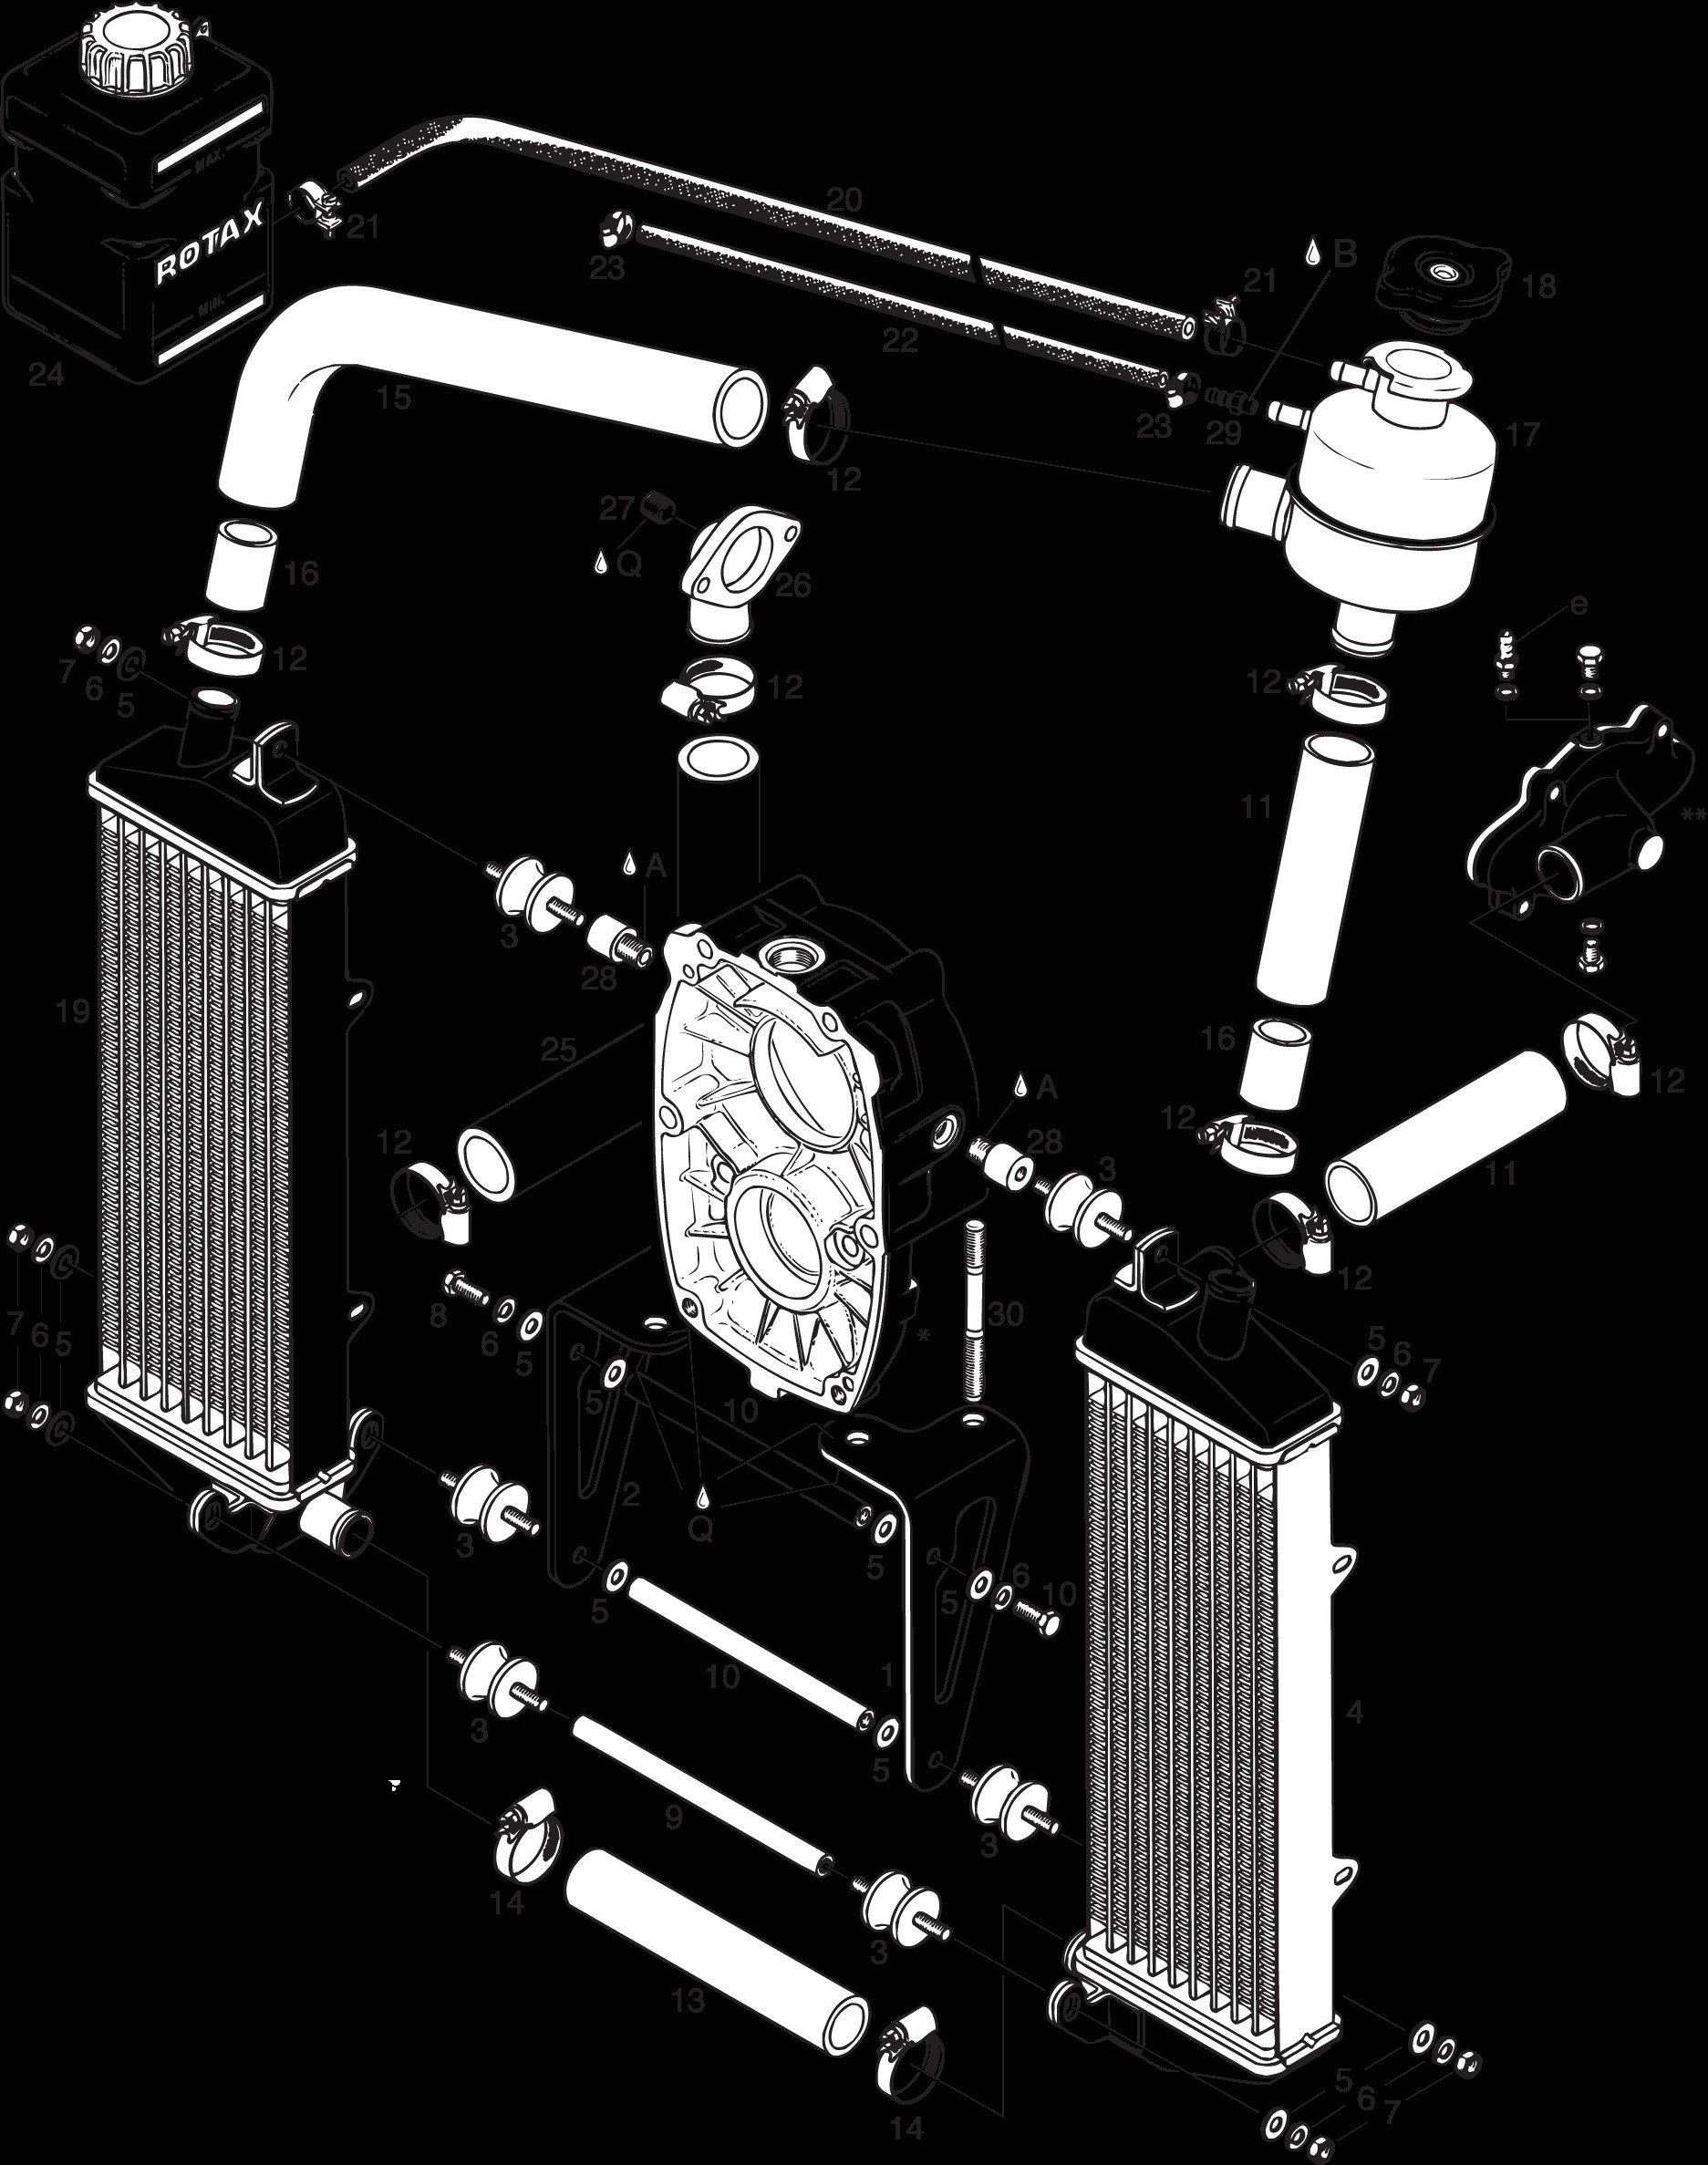 Rotax Engine Diagram 2 Piece Radiator Set for Inverted Engine Installation Rotax 582 Ul Of Rotax Engine Diagram